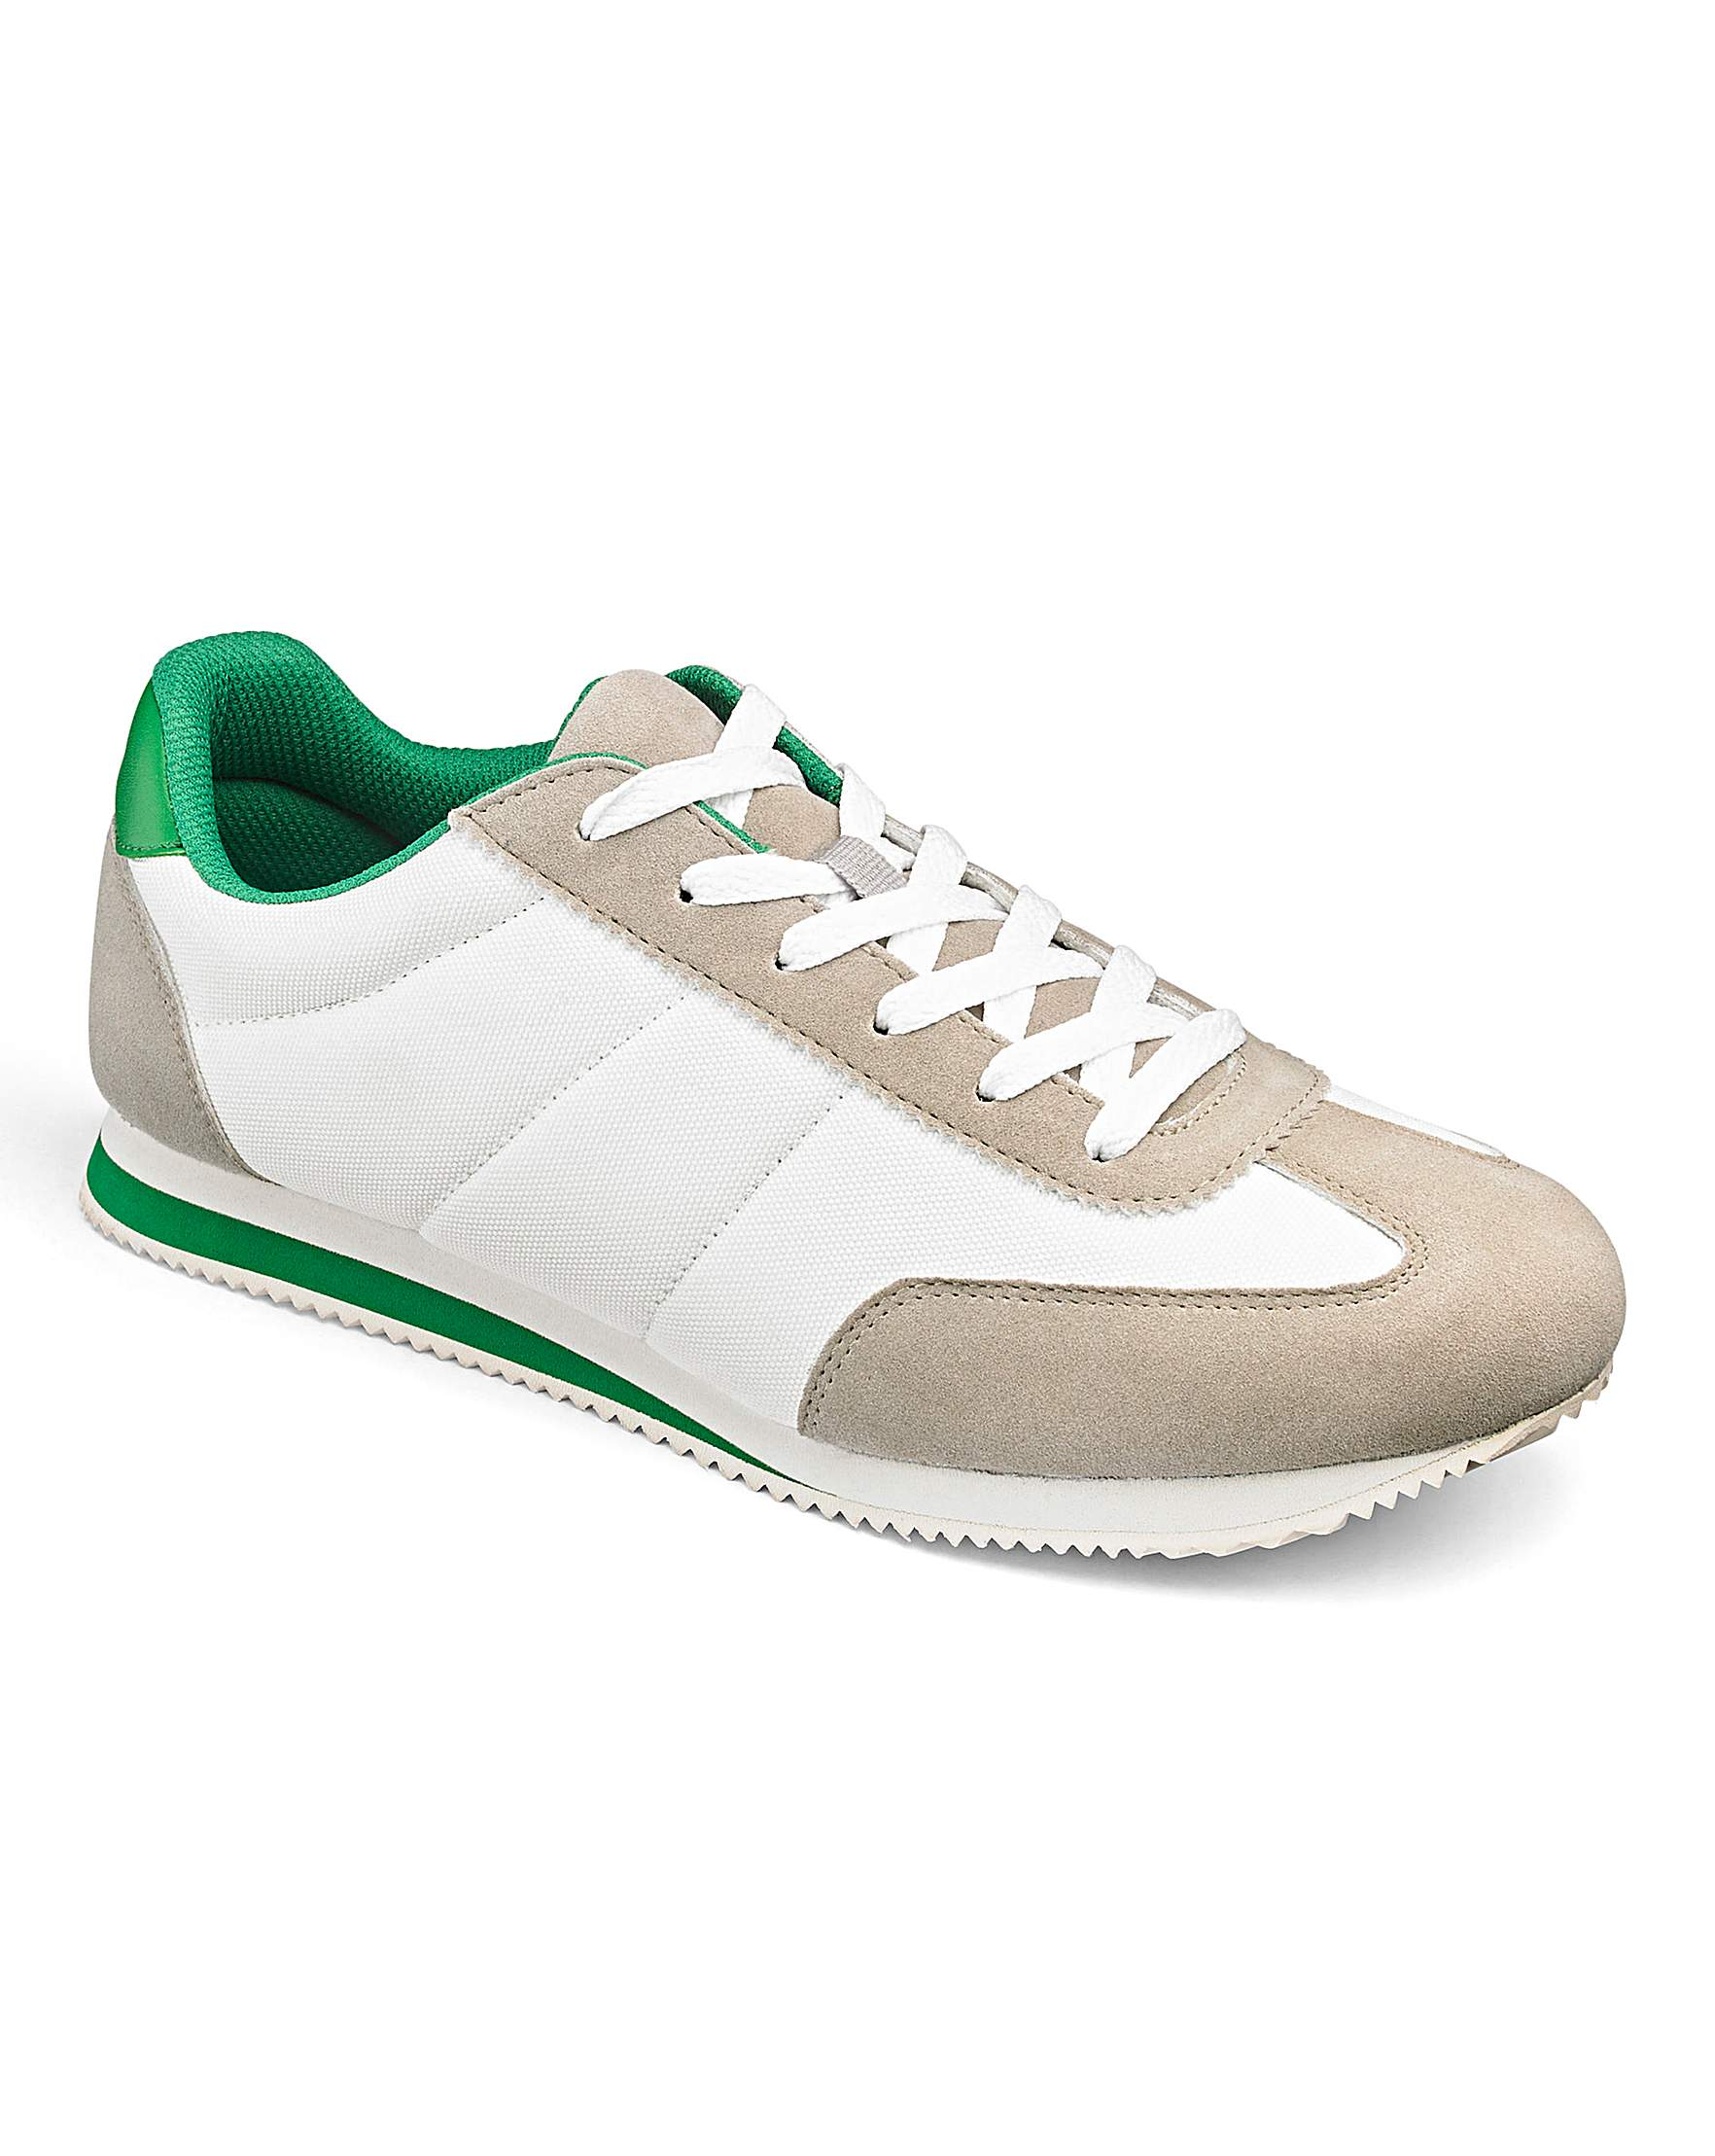 130d61cd1097 Capsule Active Lace up Trainers